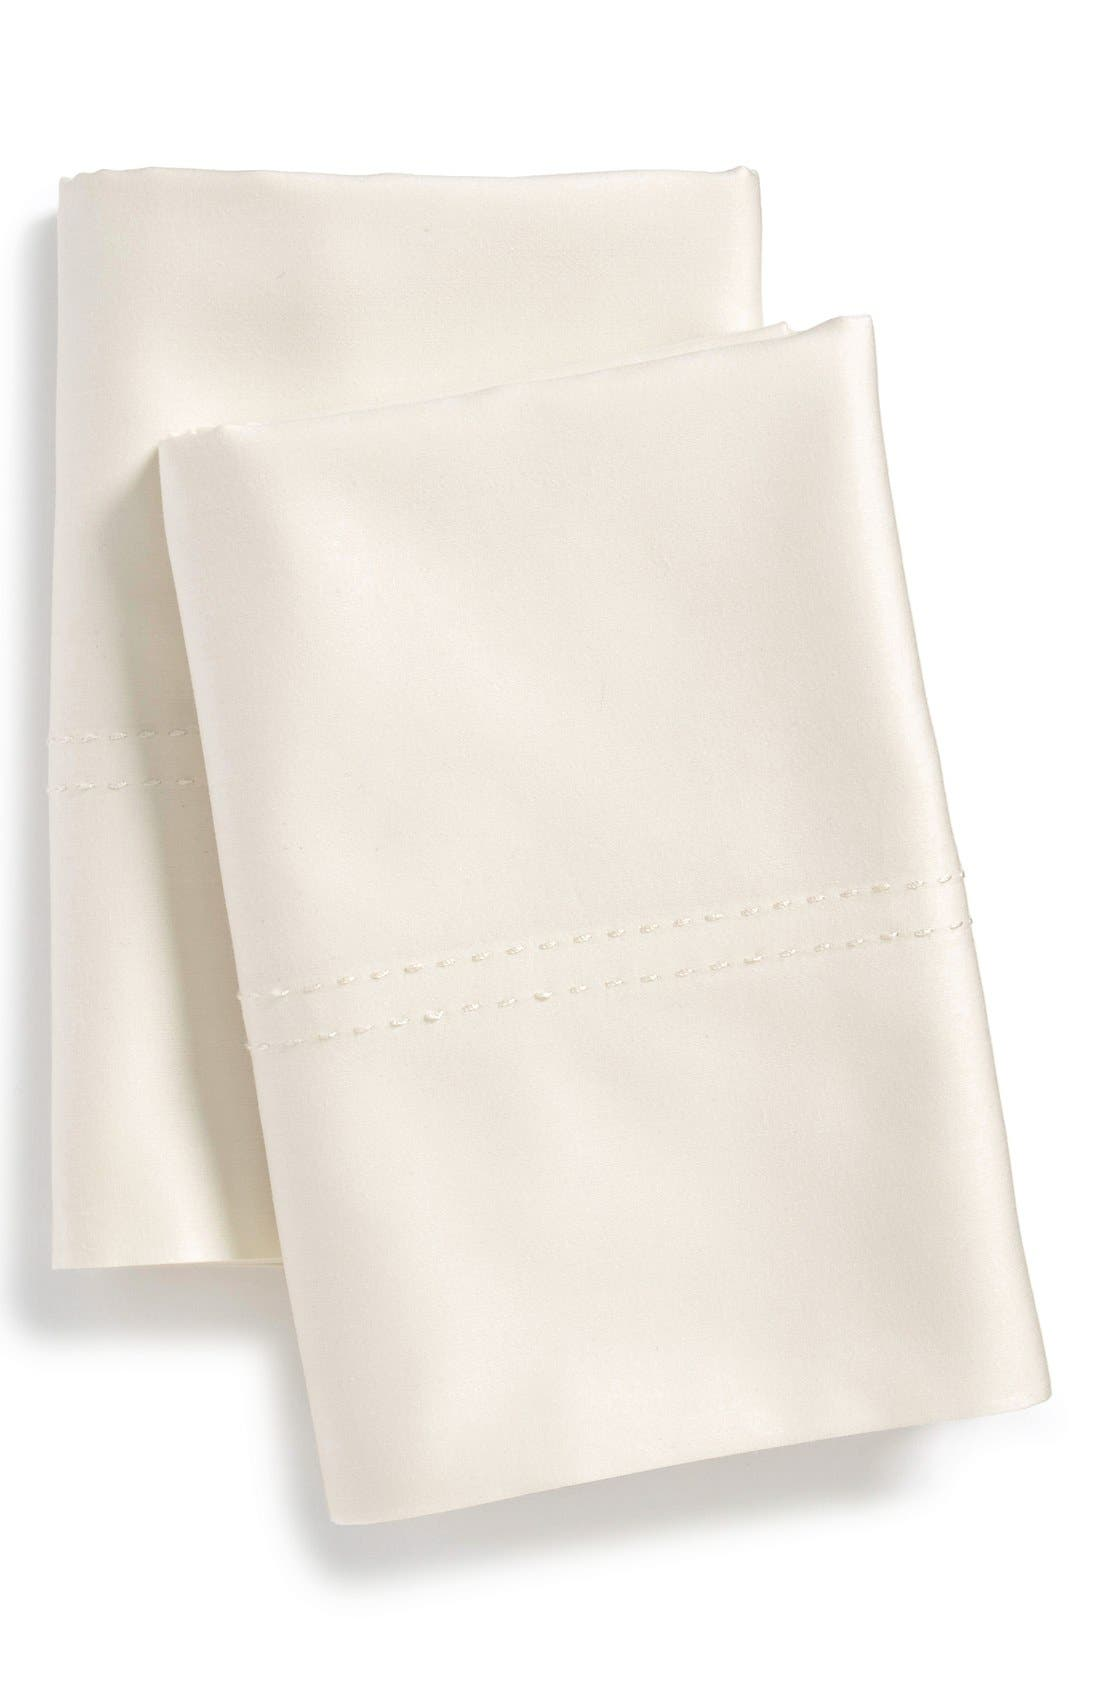 Nordstrom at Home 400 Thread Count Standard Pillowcases (Set of 2)